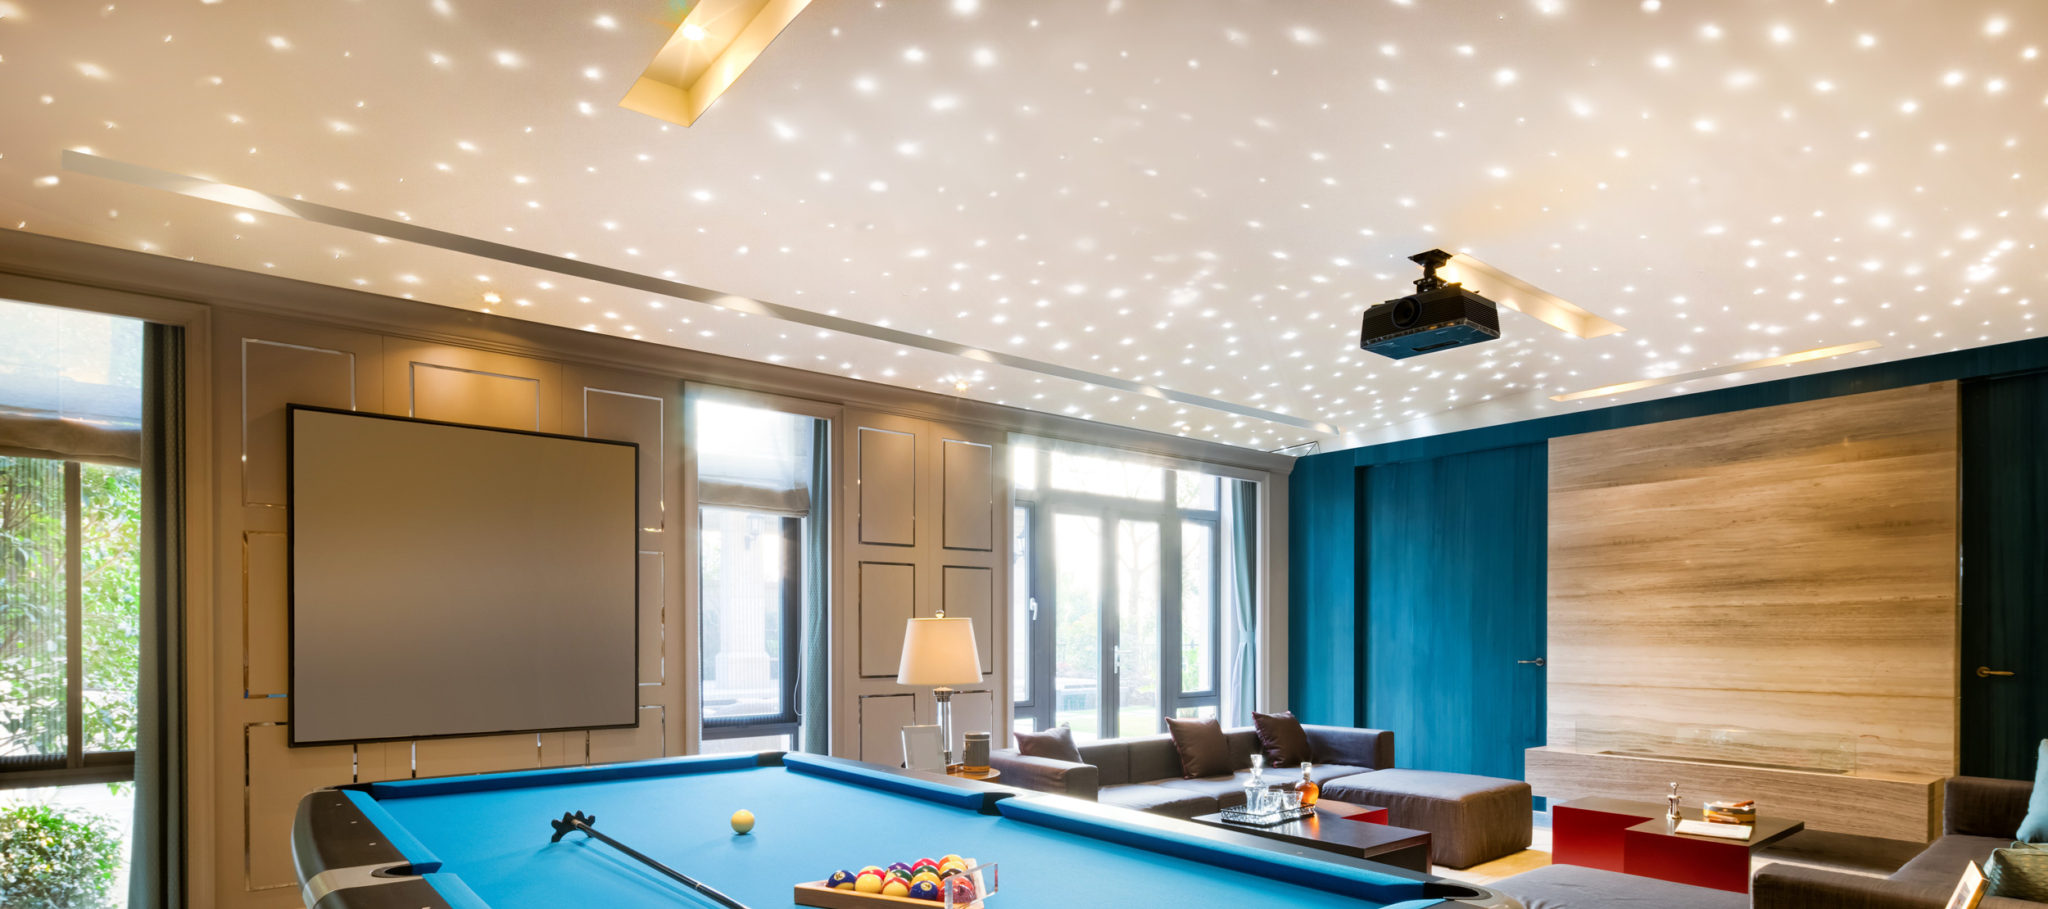 Fiber Optic Starfield Ceiling - Game Room